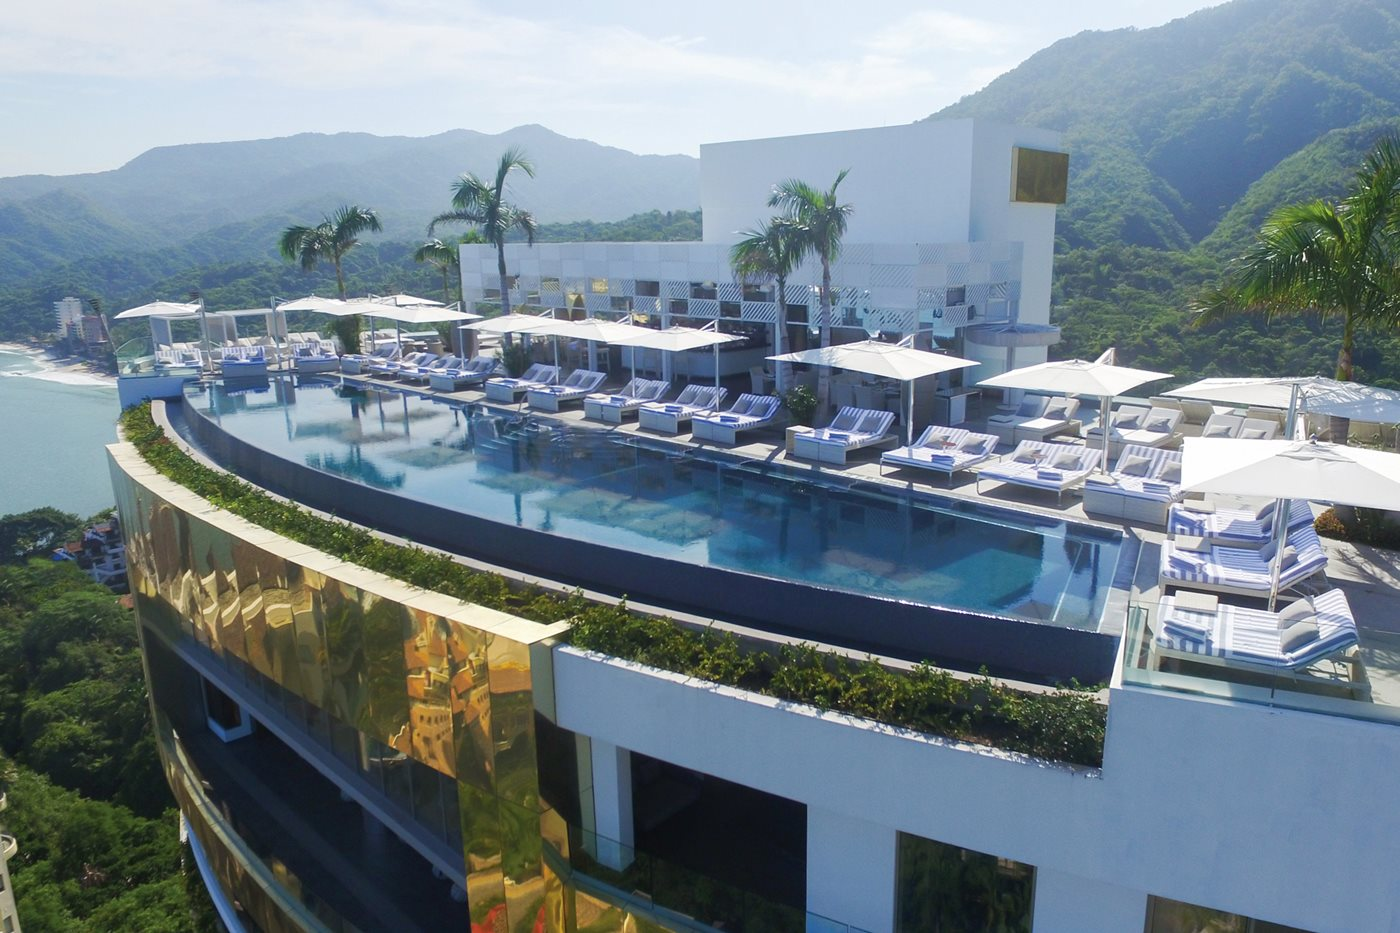 Hotel Mousai Puerto Vallarta Mexico 5 star hotel rooftop-infinity-pool-amenities.jpeg